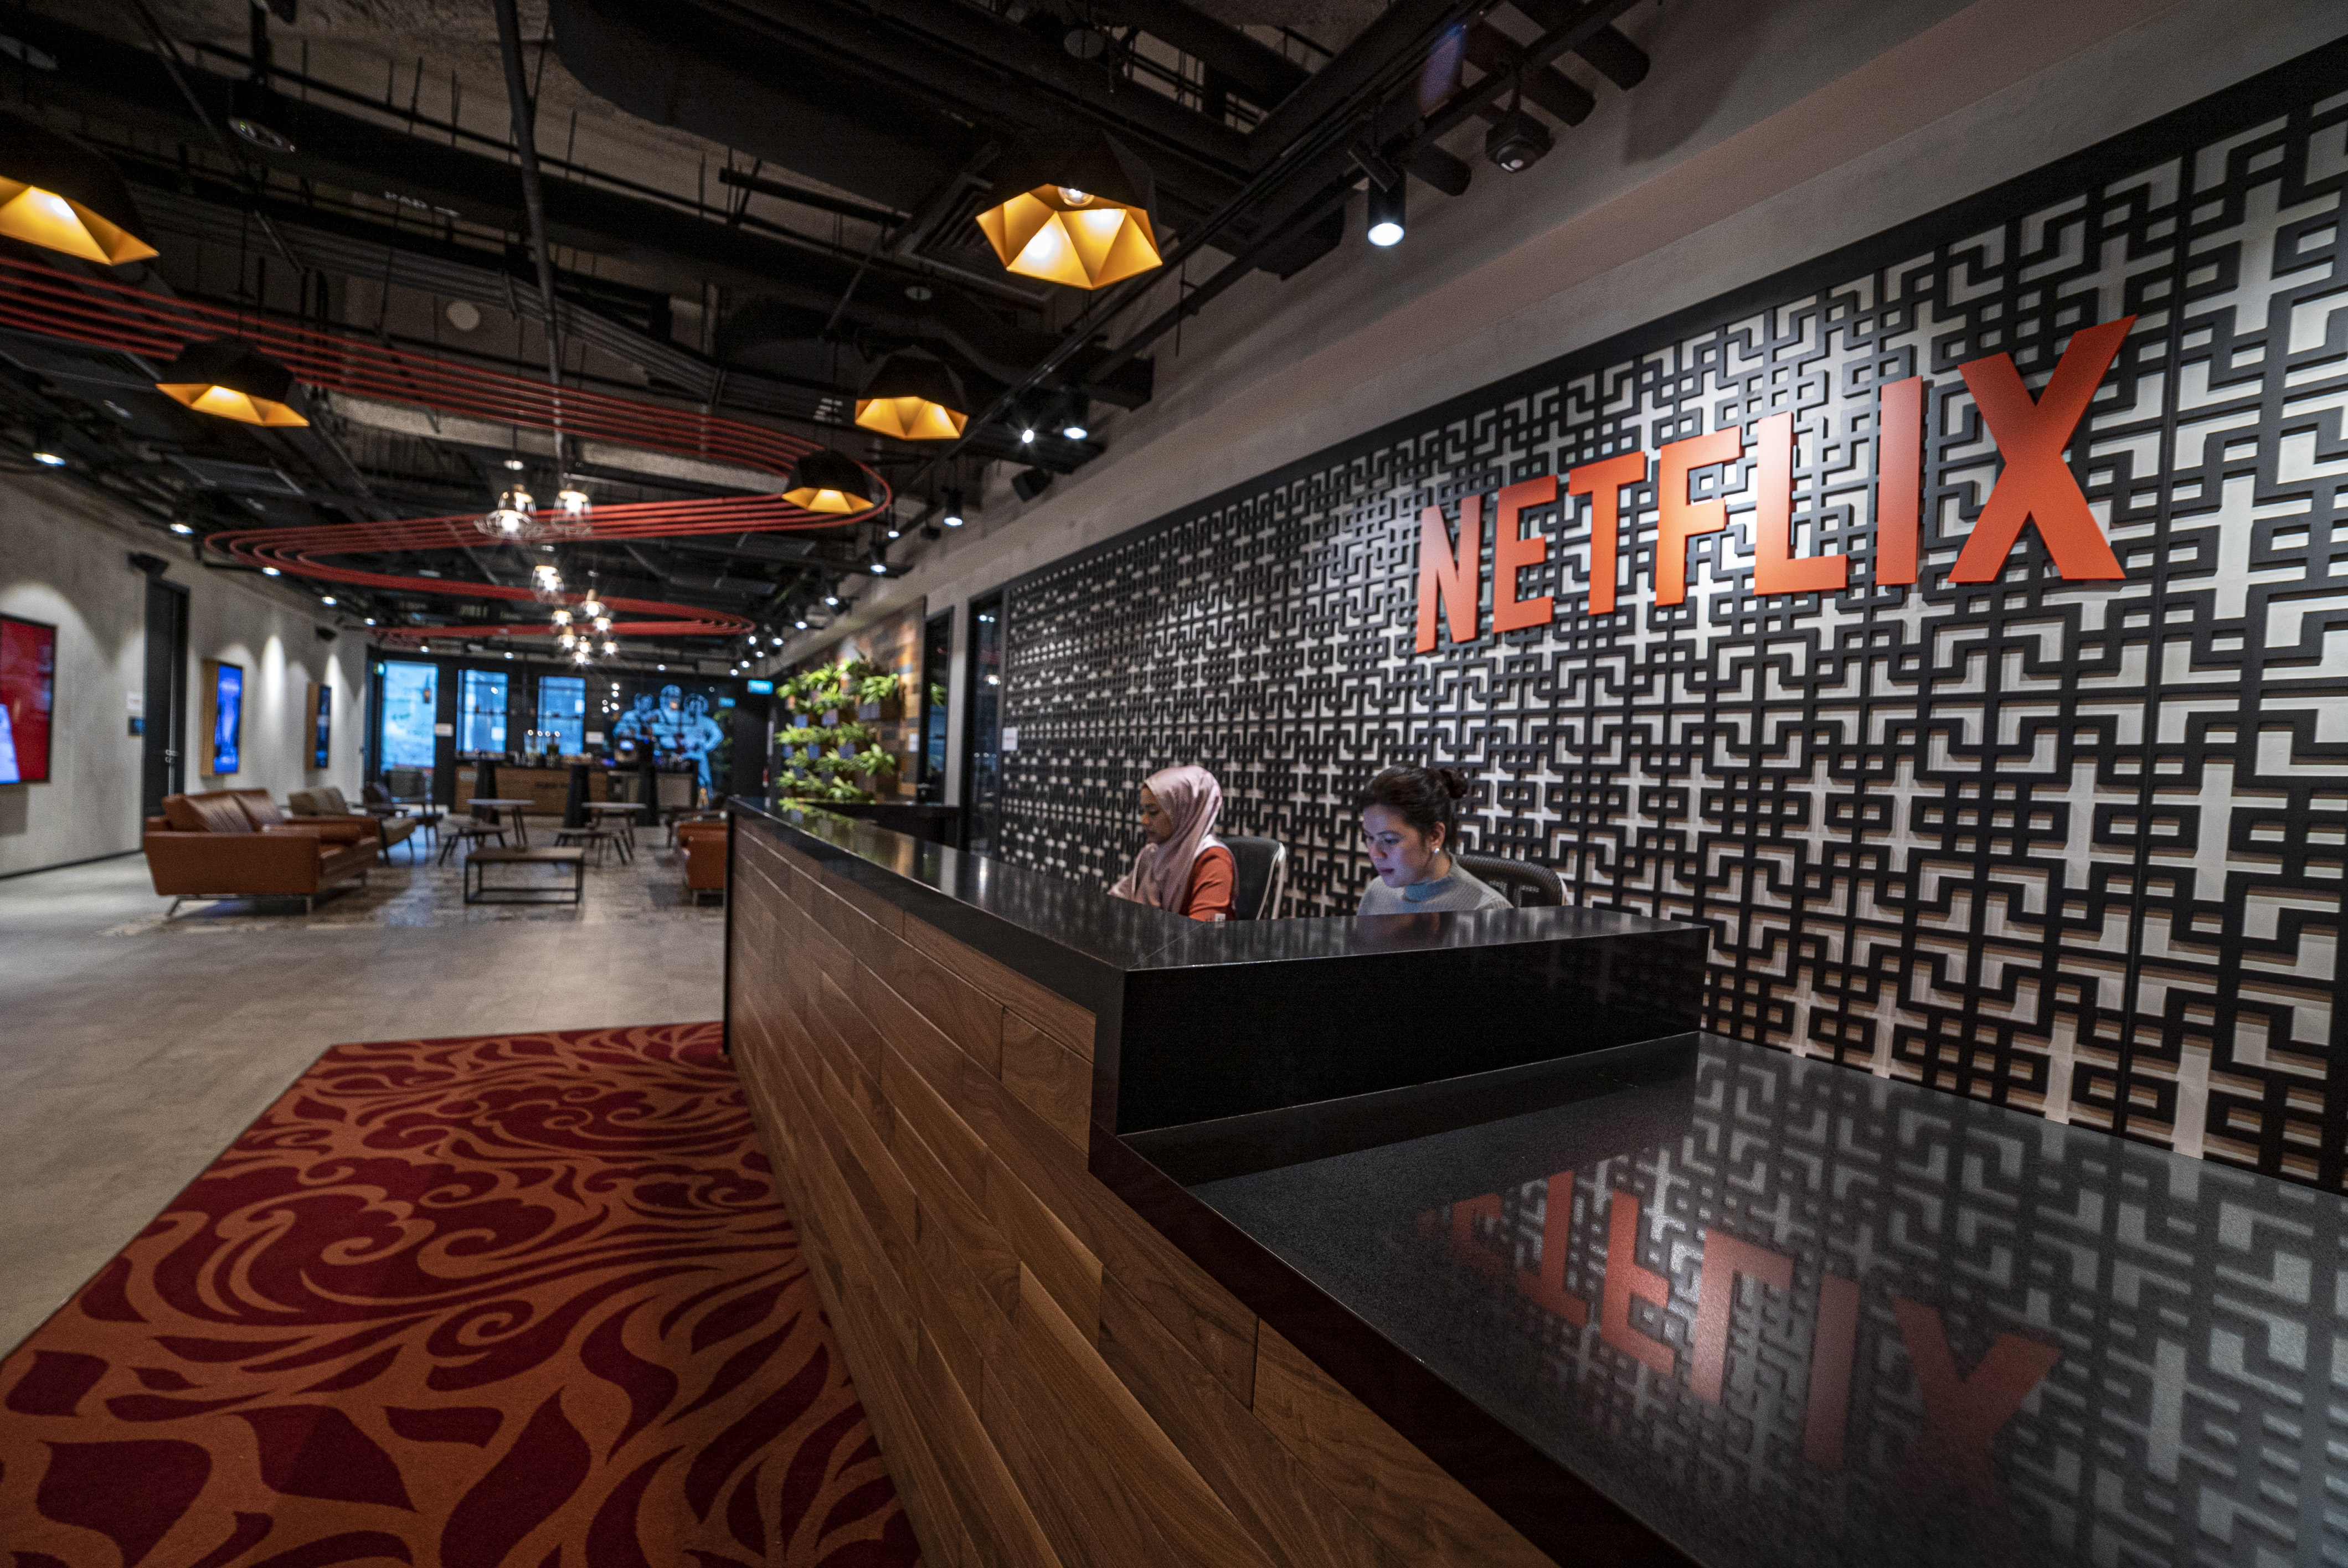 """Netflix's Reed Hastings Envisions """"Entertaining The World"""" In Chappelle-Free Q3 Earnings Call; Execs Talk Video Games, Content Spending & More"""